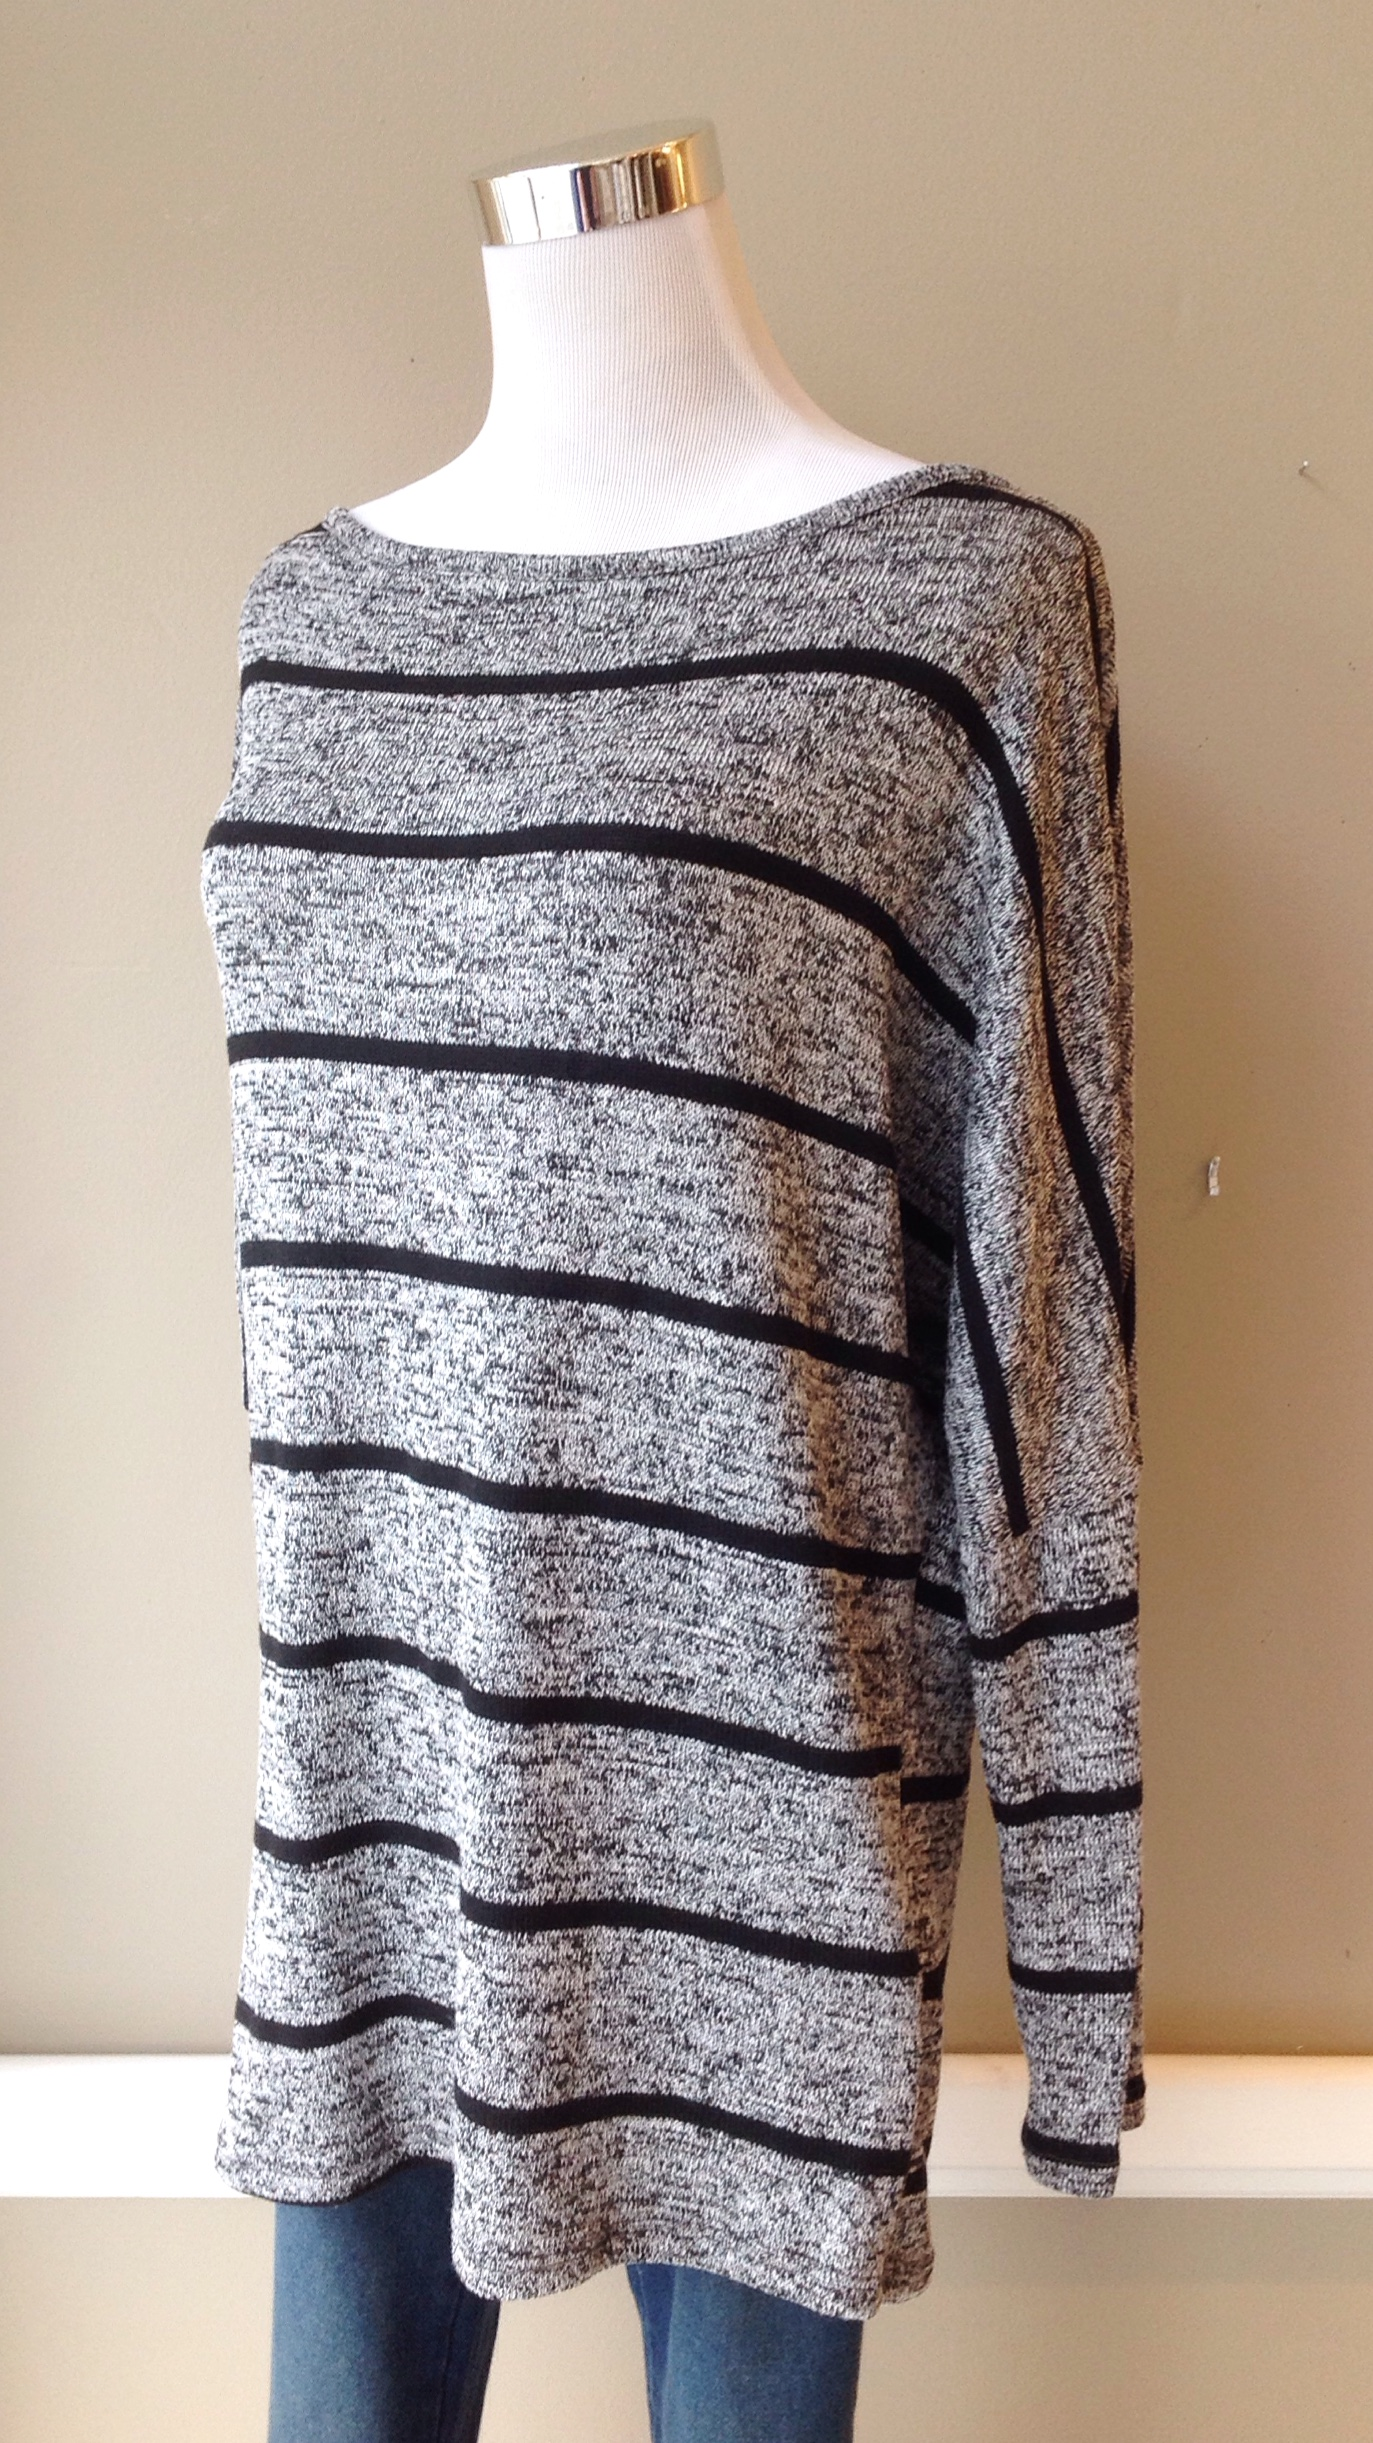 Lightweight marl and  stripe sweater with dolman sleeves in black and white, $32